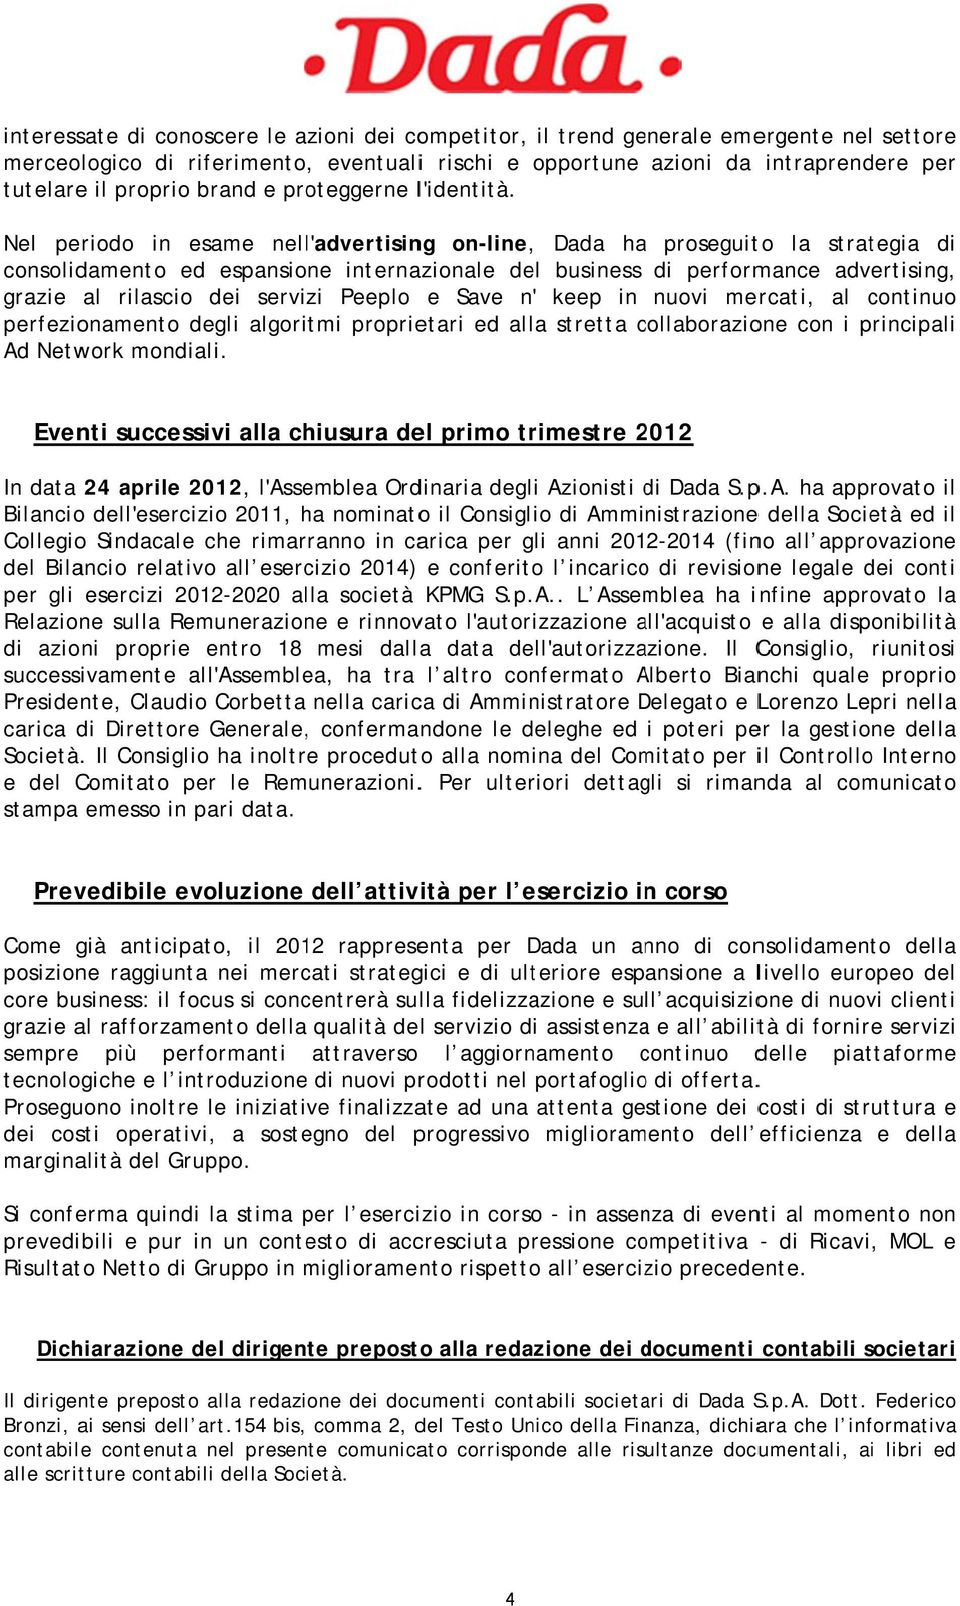 Nel periodo in esame nell'advertising on-line,, Dada haa proseguito la strategia di consolidamento ed espansione internazionale del business di performance advertising, grazie al rilascio dei servizi